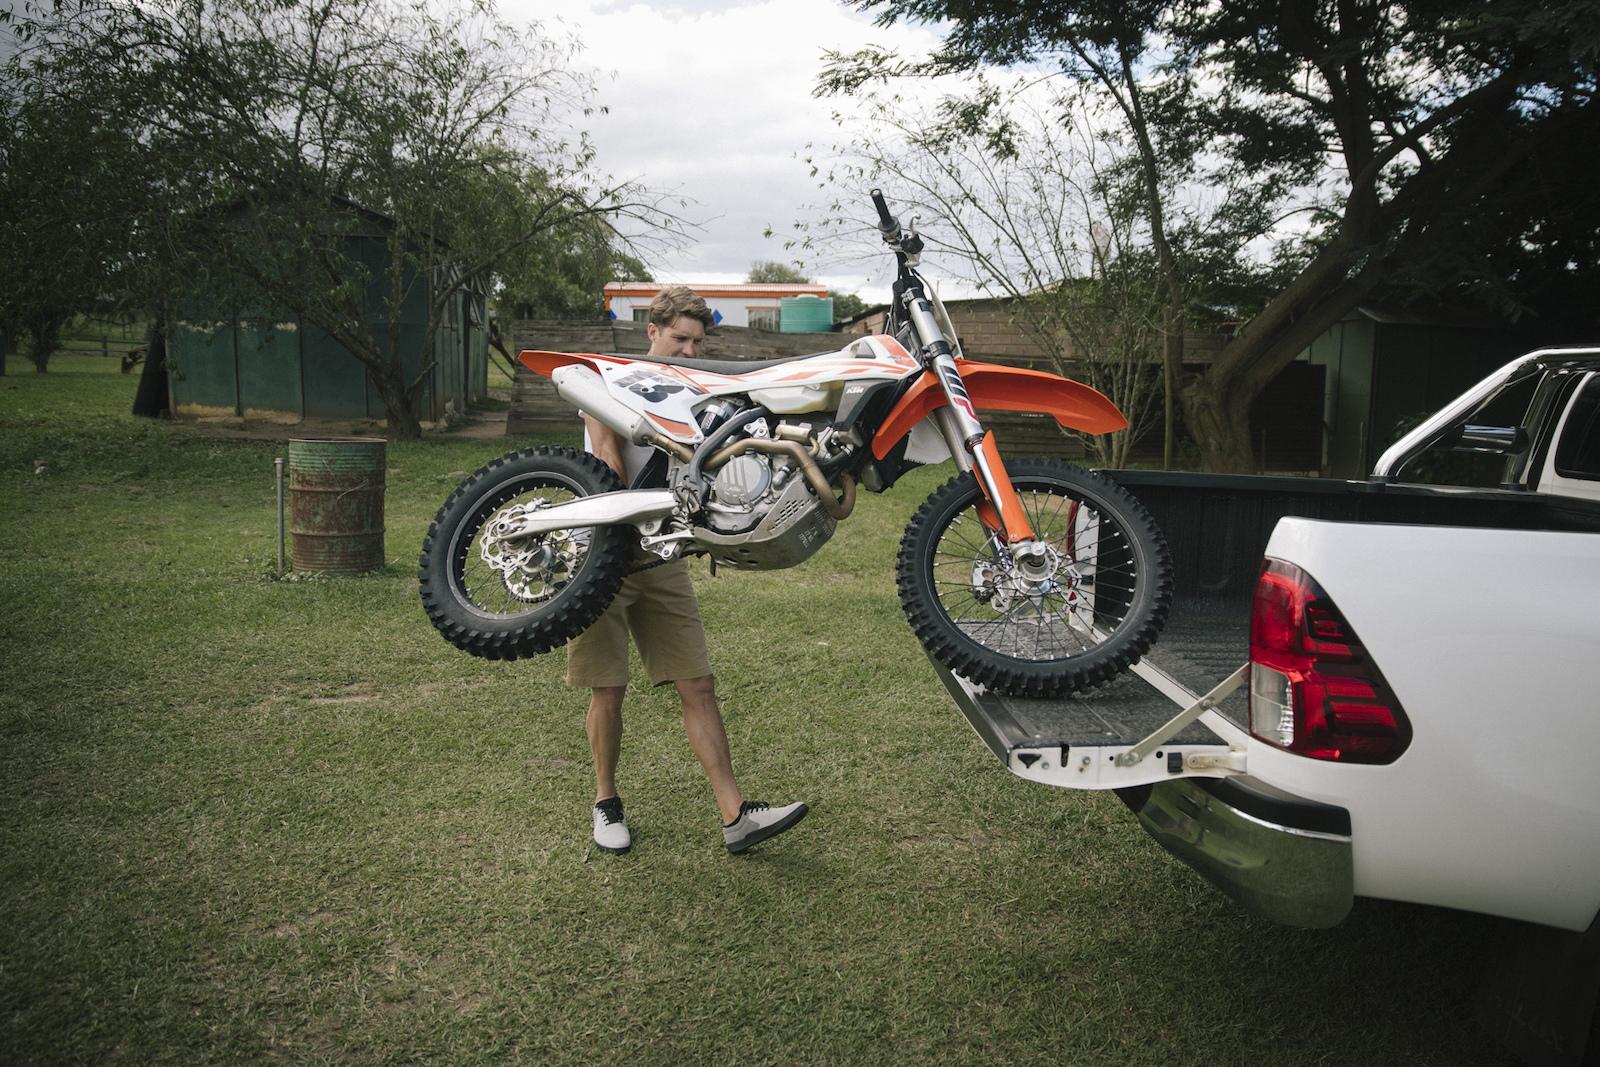 Greg Minnaar at home in Pietermaritzburg South Africa